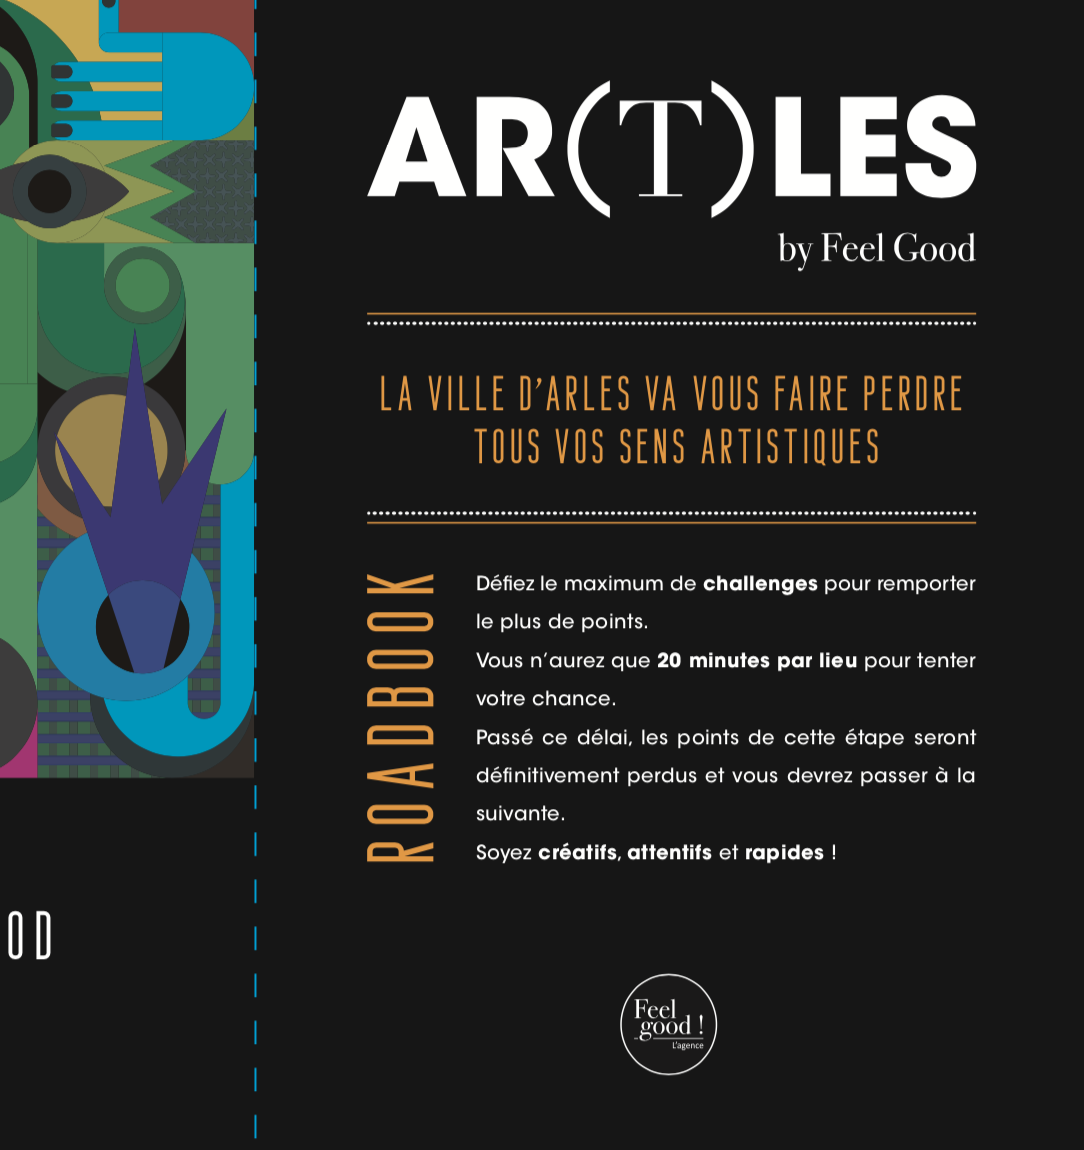 AR(t)LES by Feel Good